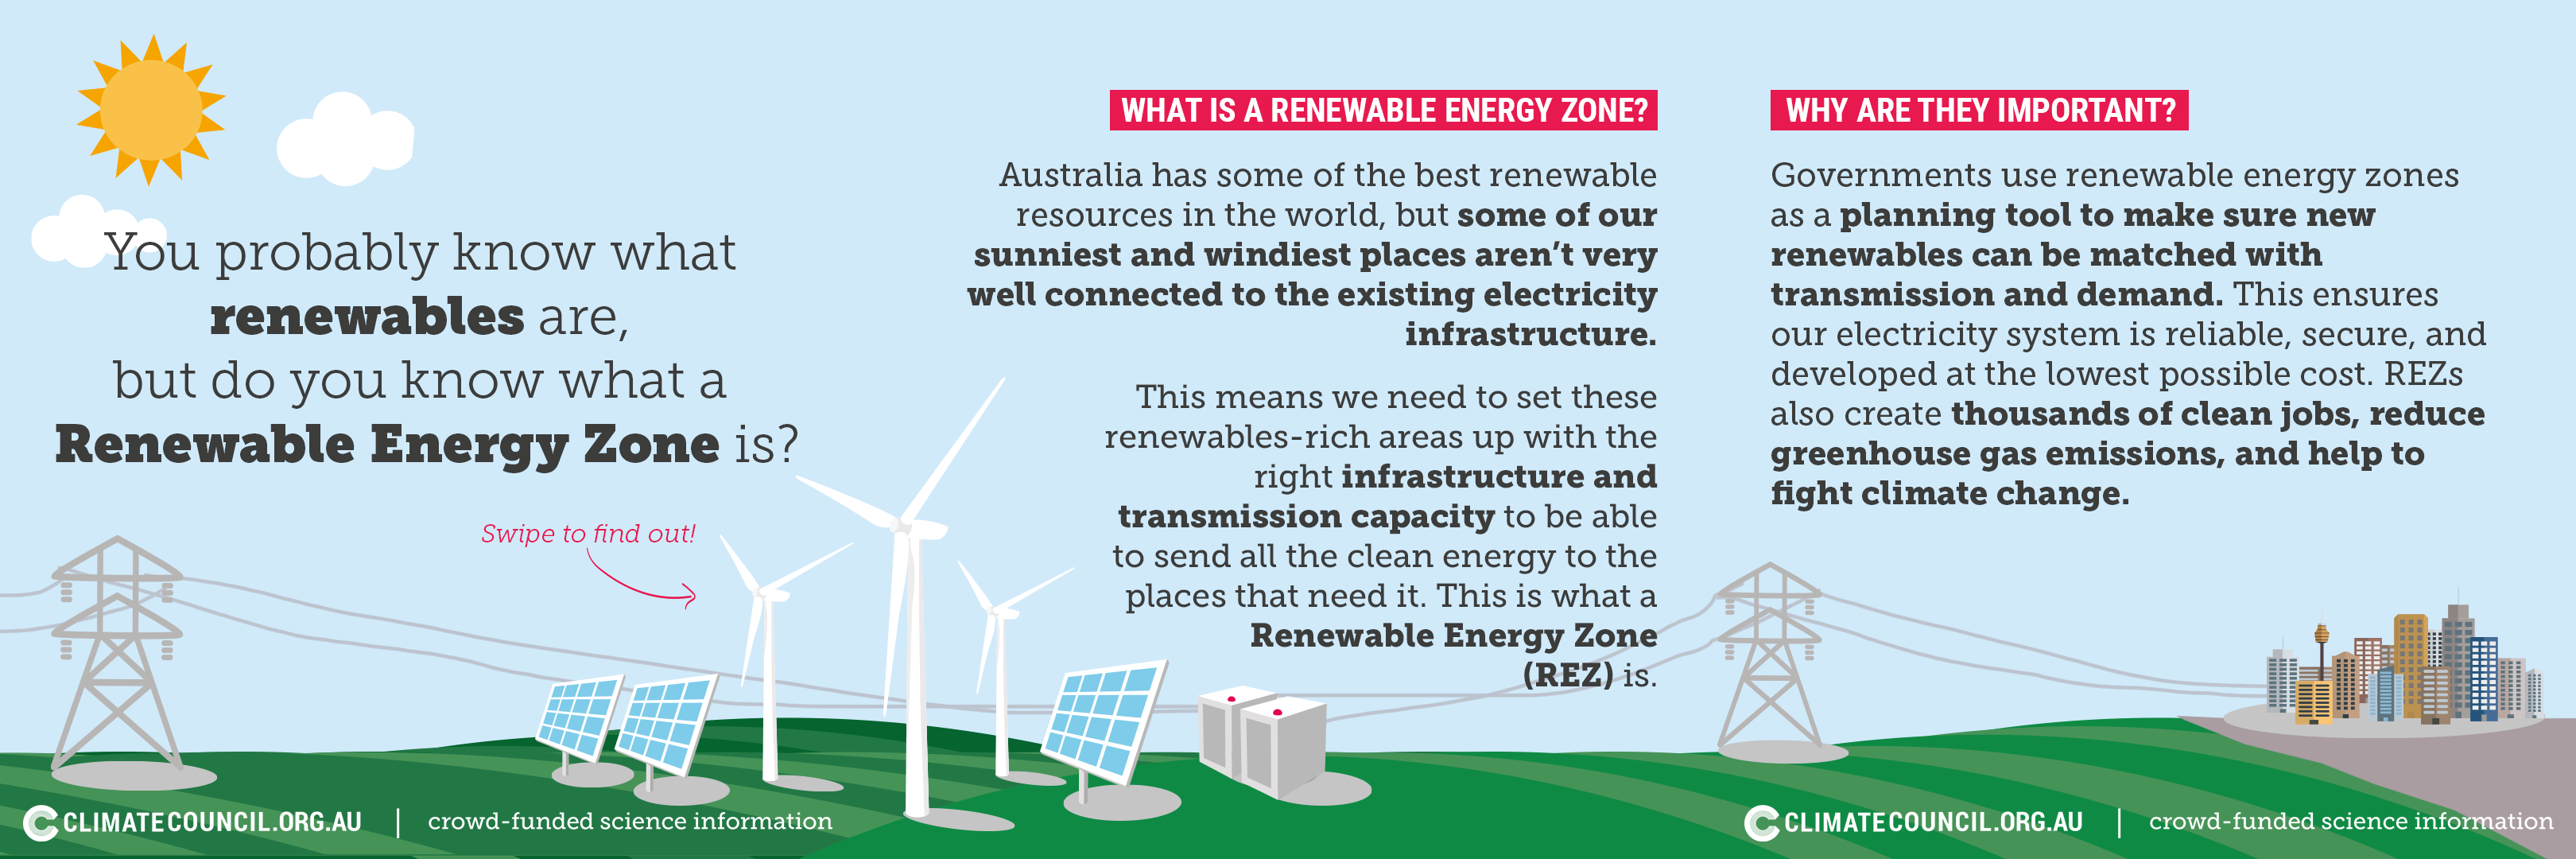 A graphic explaining what a Renewable Energy Zone is.